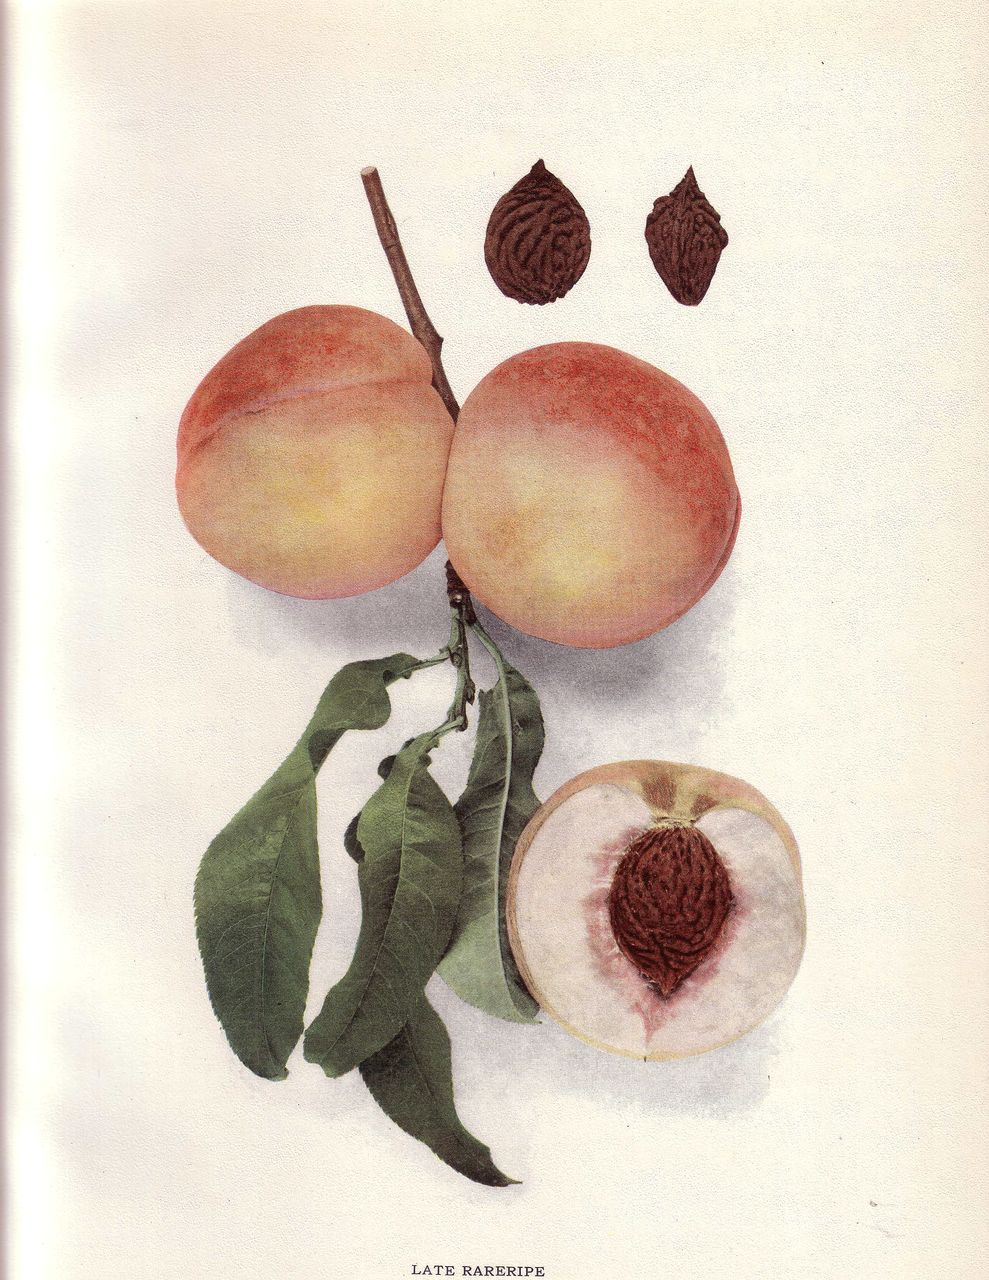 Lovely Fruit Print, 1917, PEACHES OF NY Late Rareripe, Hedrick